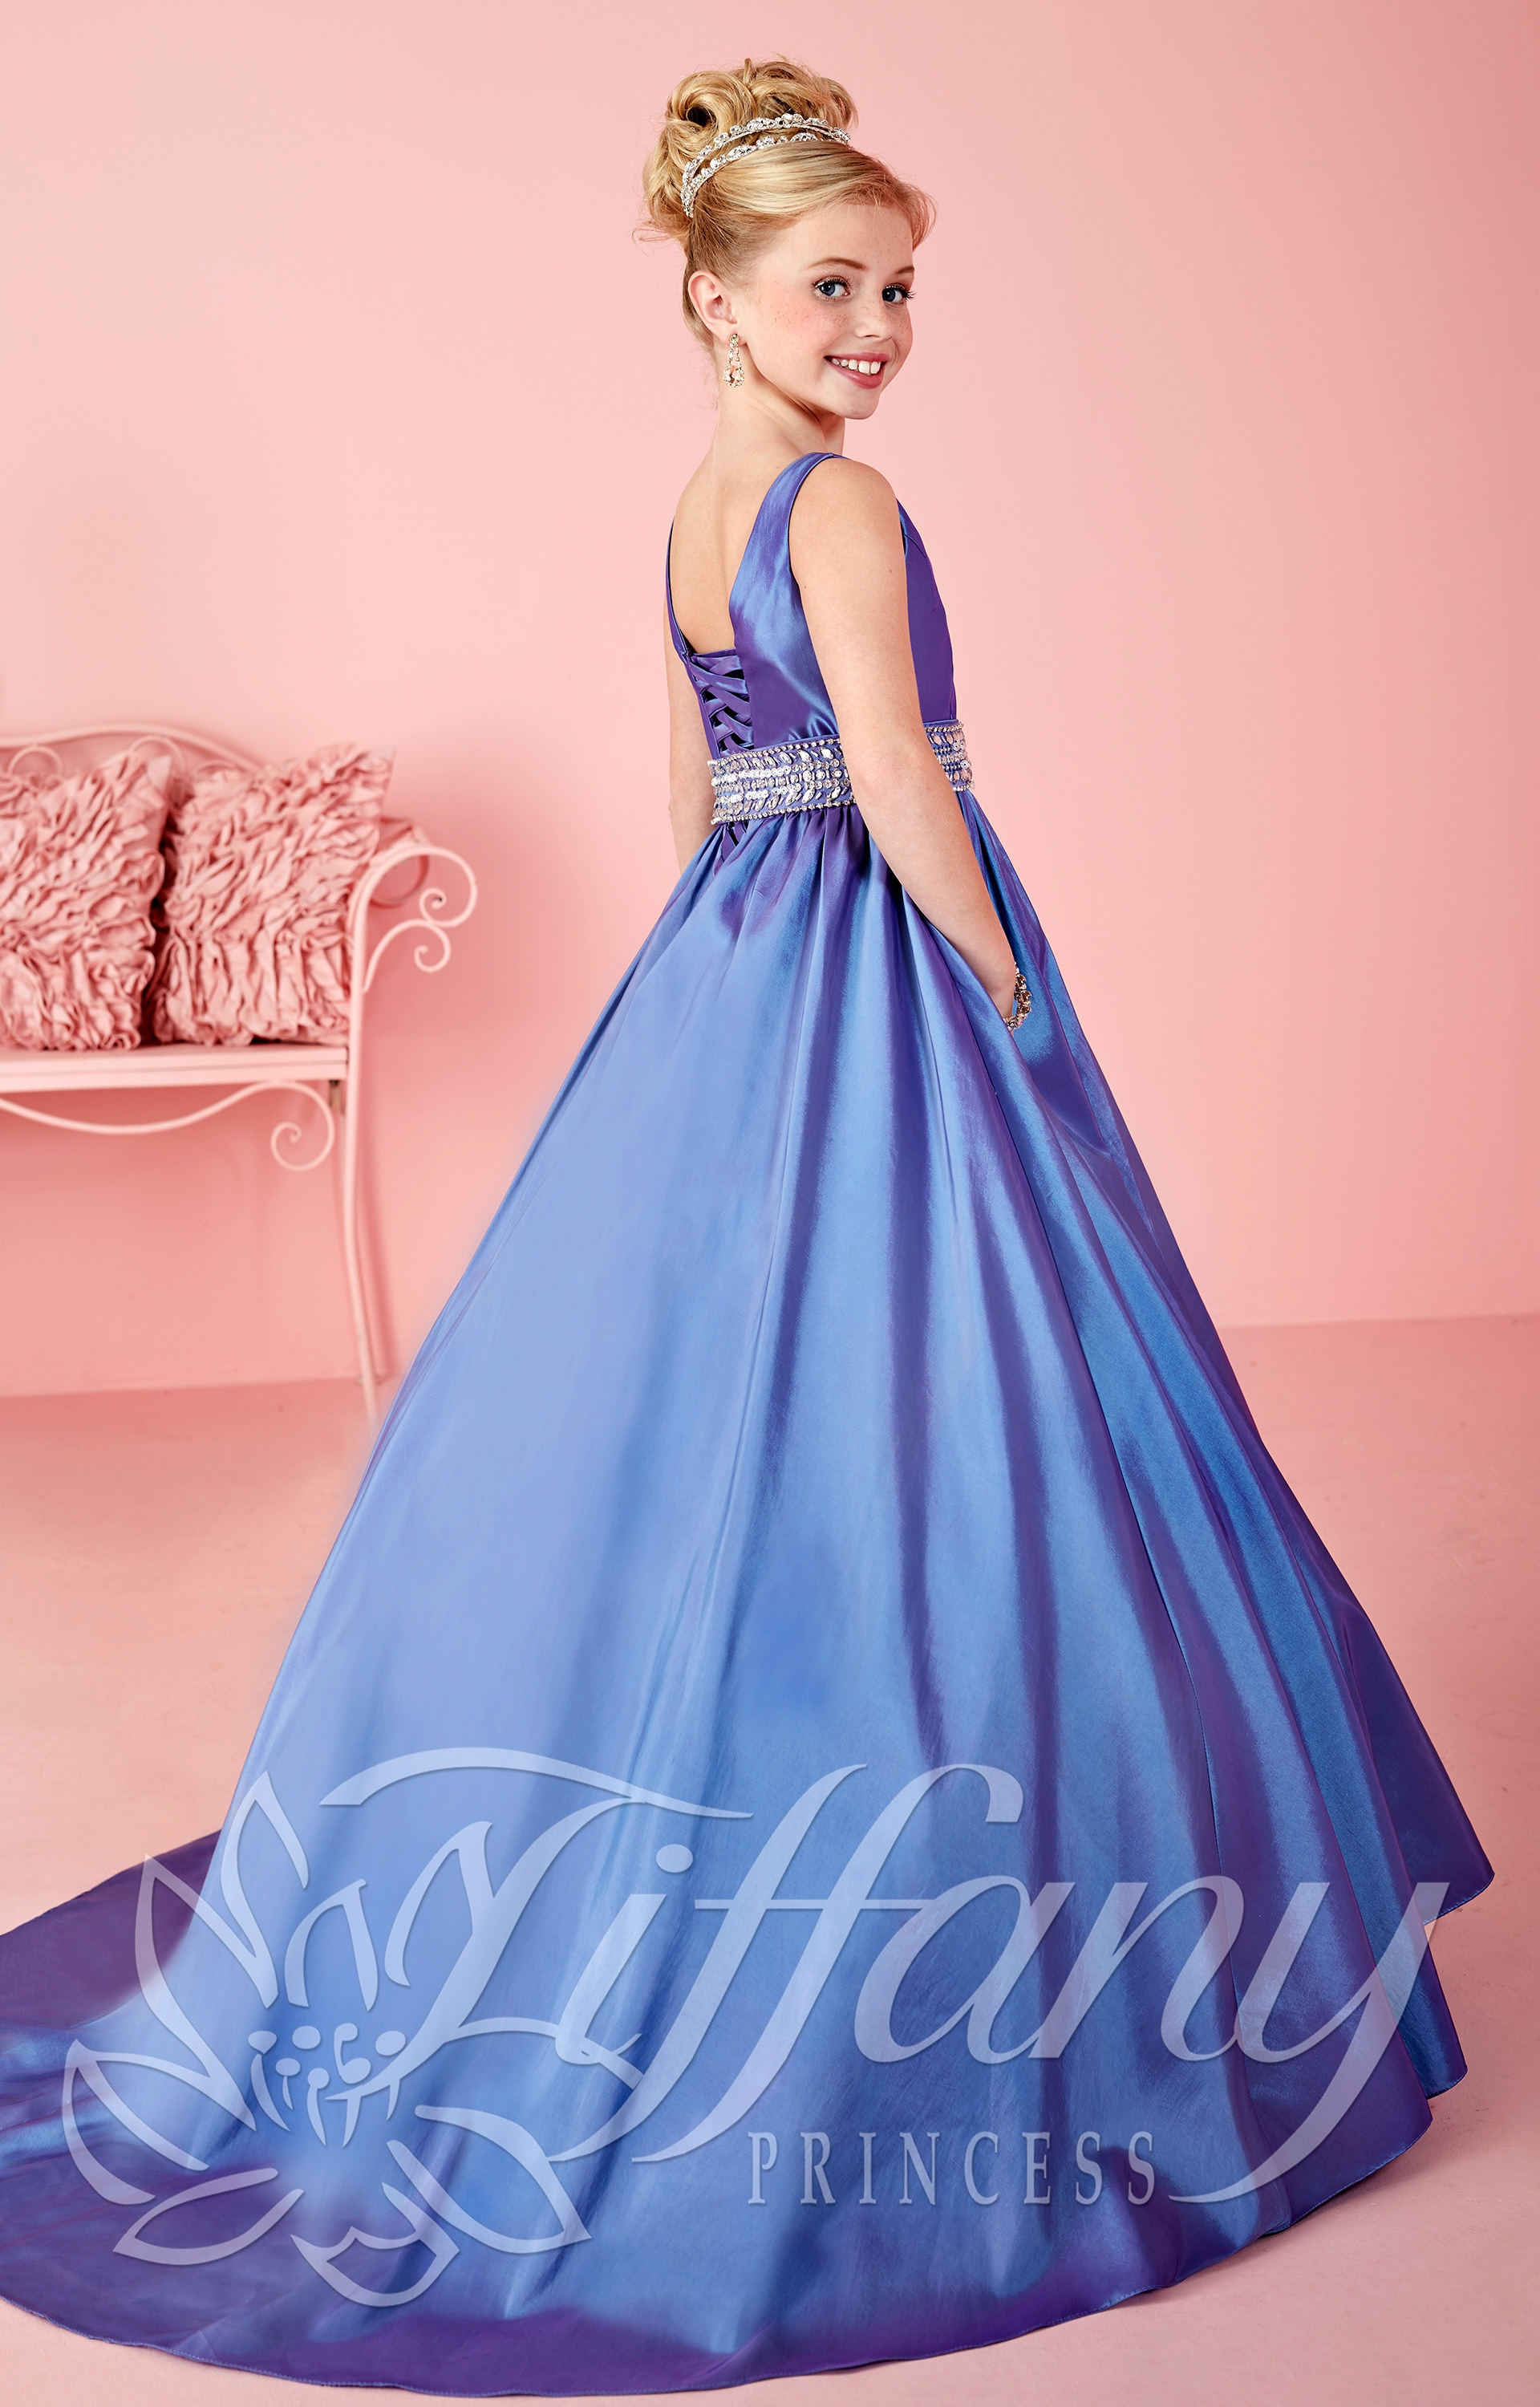 tiffany princess 13464 the first lady dress prom dress